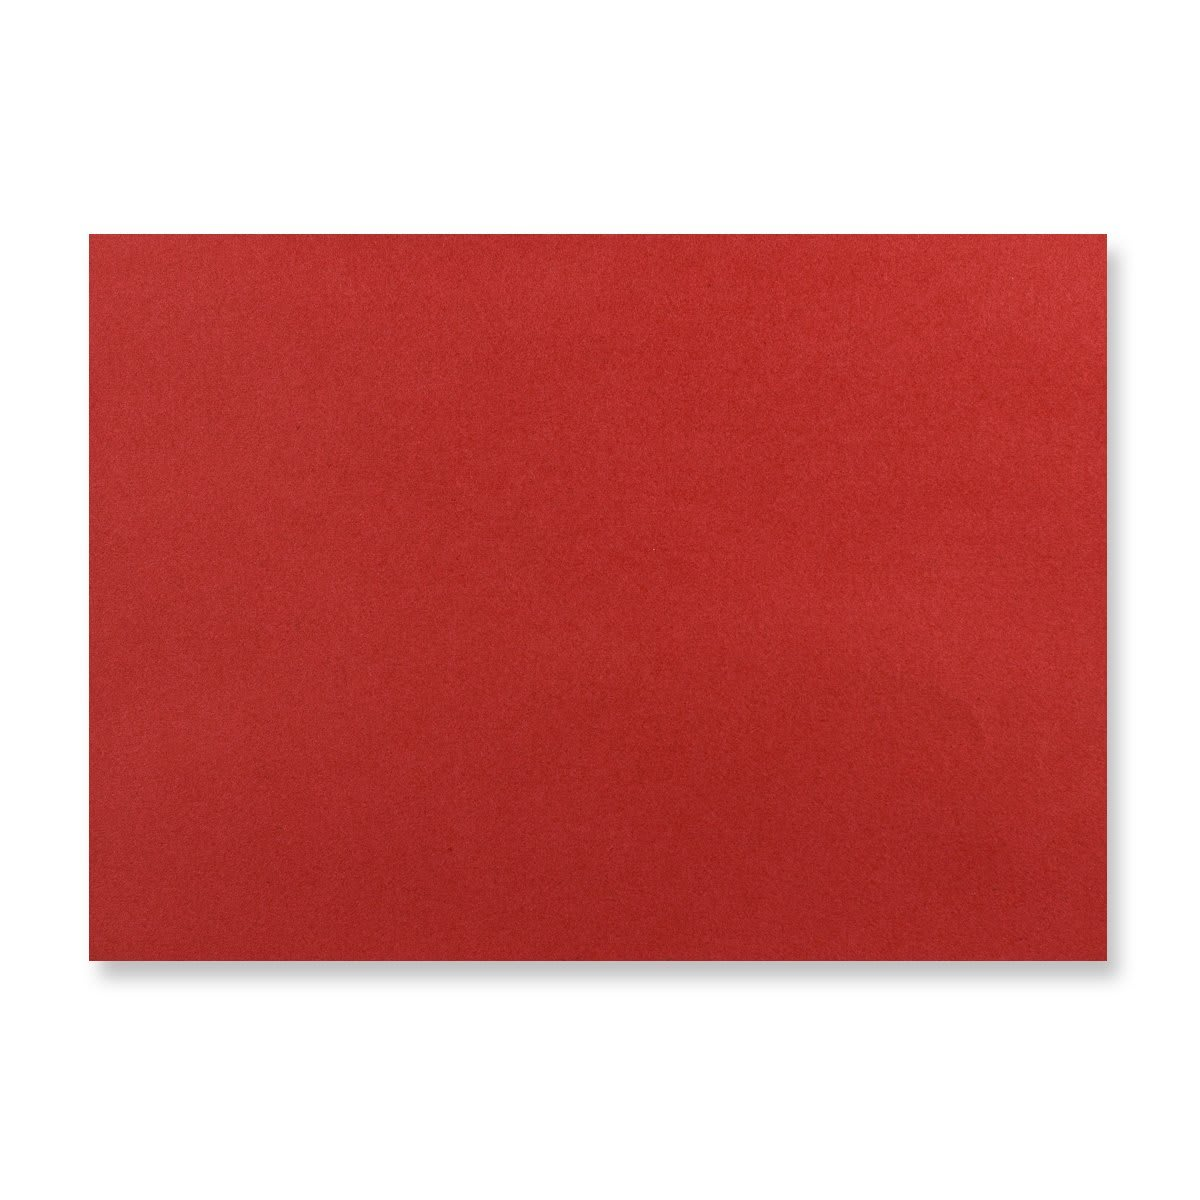 C6 DARK RED V-FLAP PEEL AND SEAL ENVELOPES